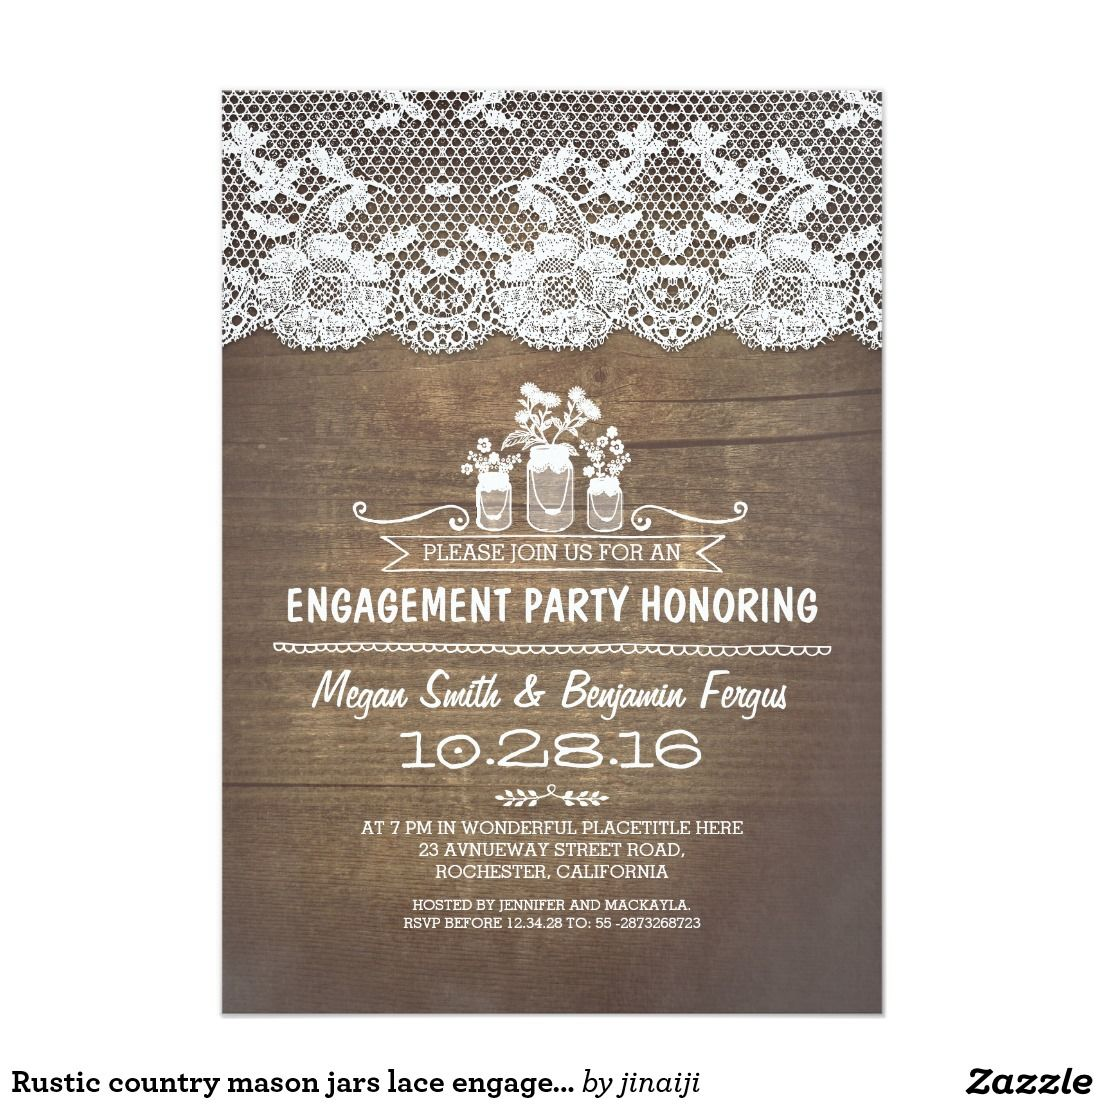 Rustic Country Mason Jars Lace Engagement Party Card Wedding